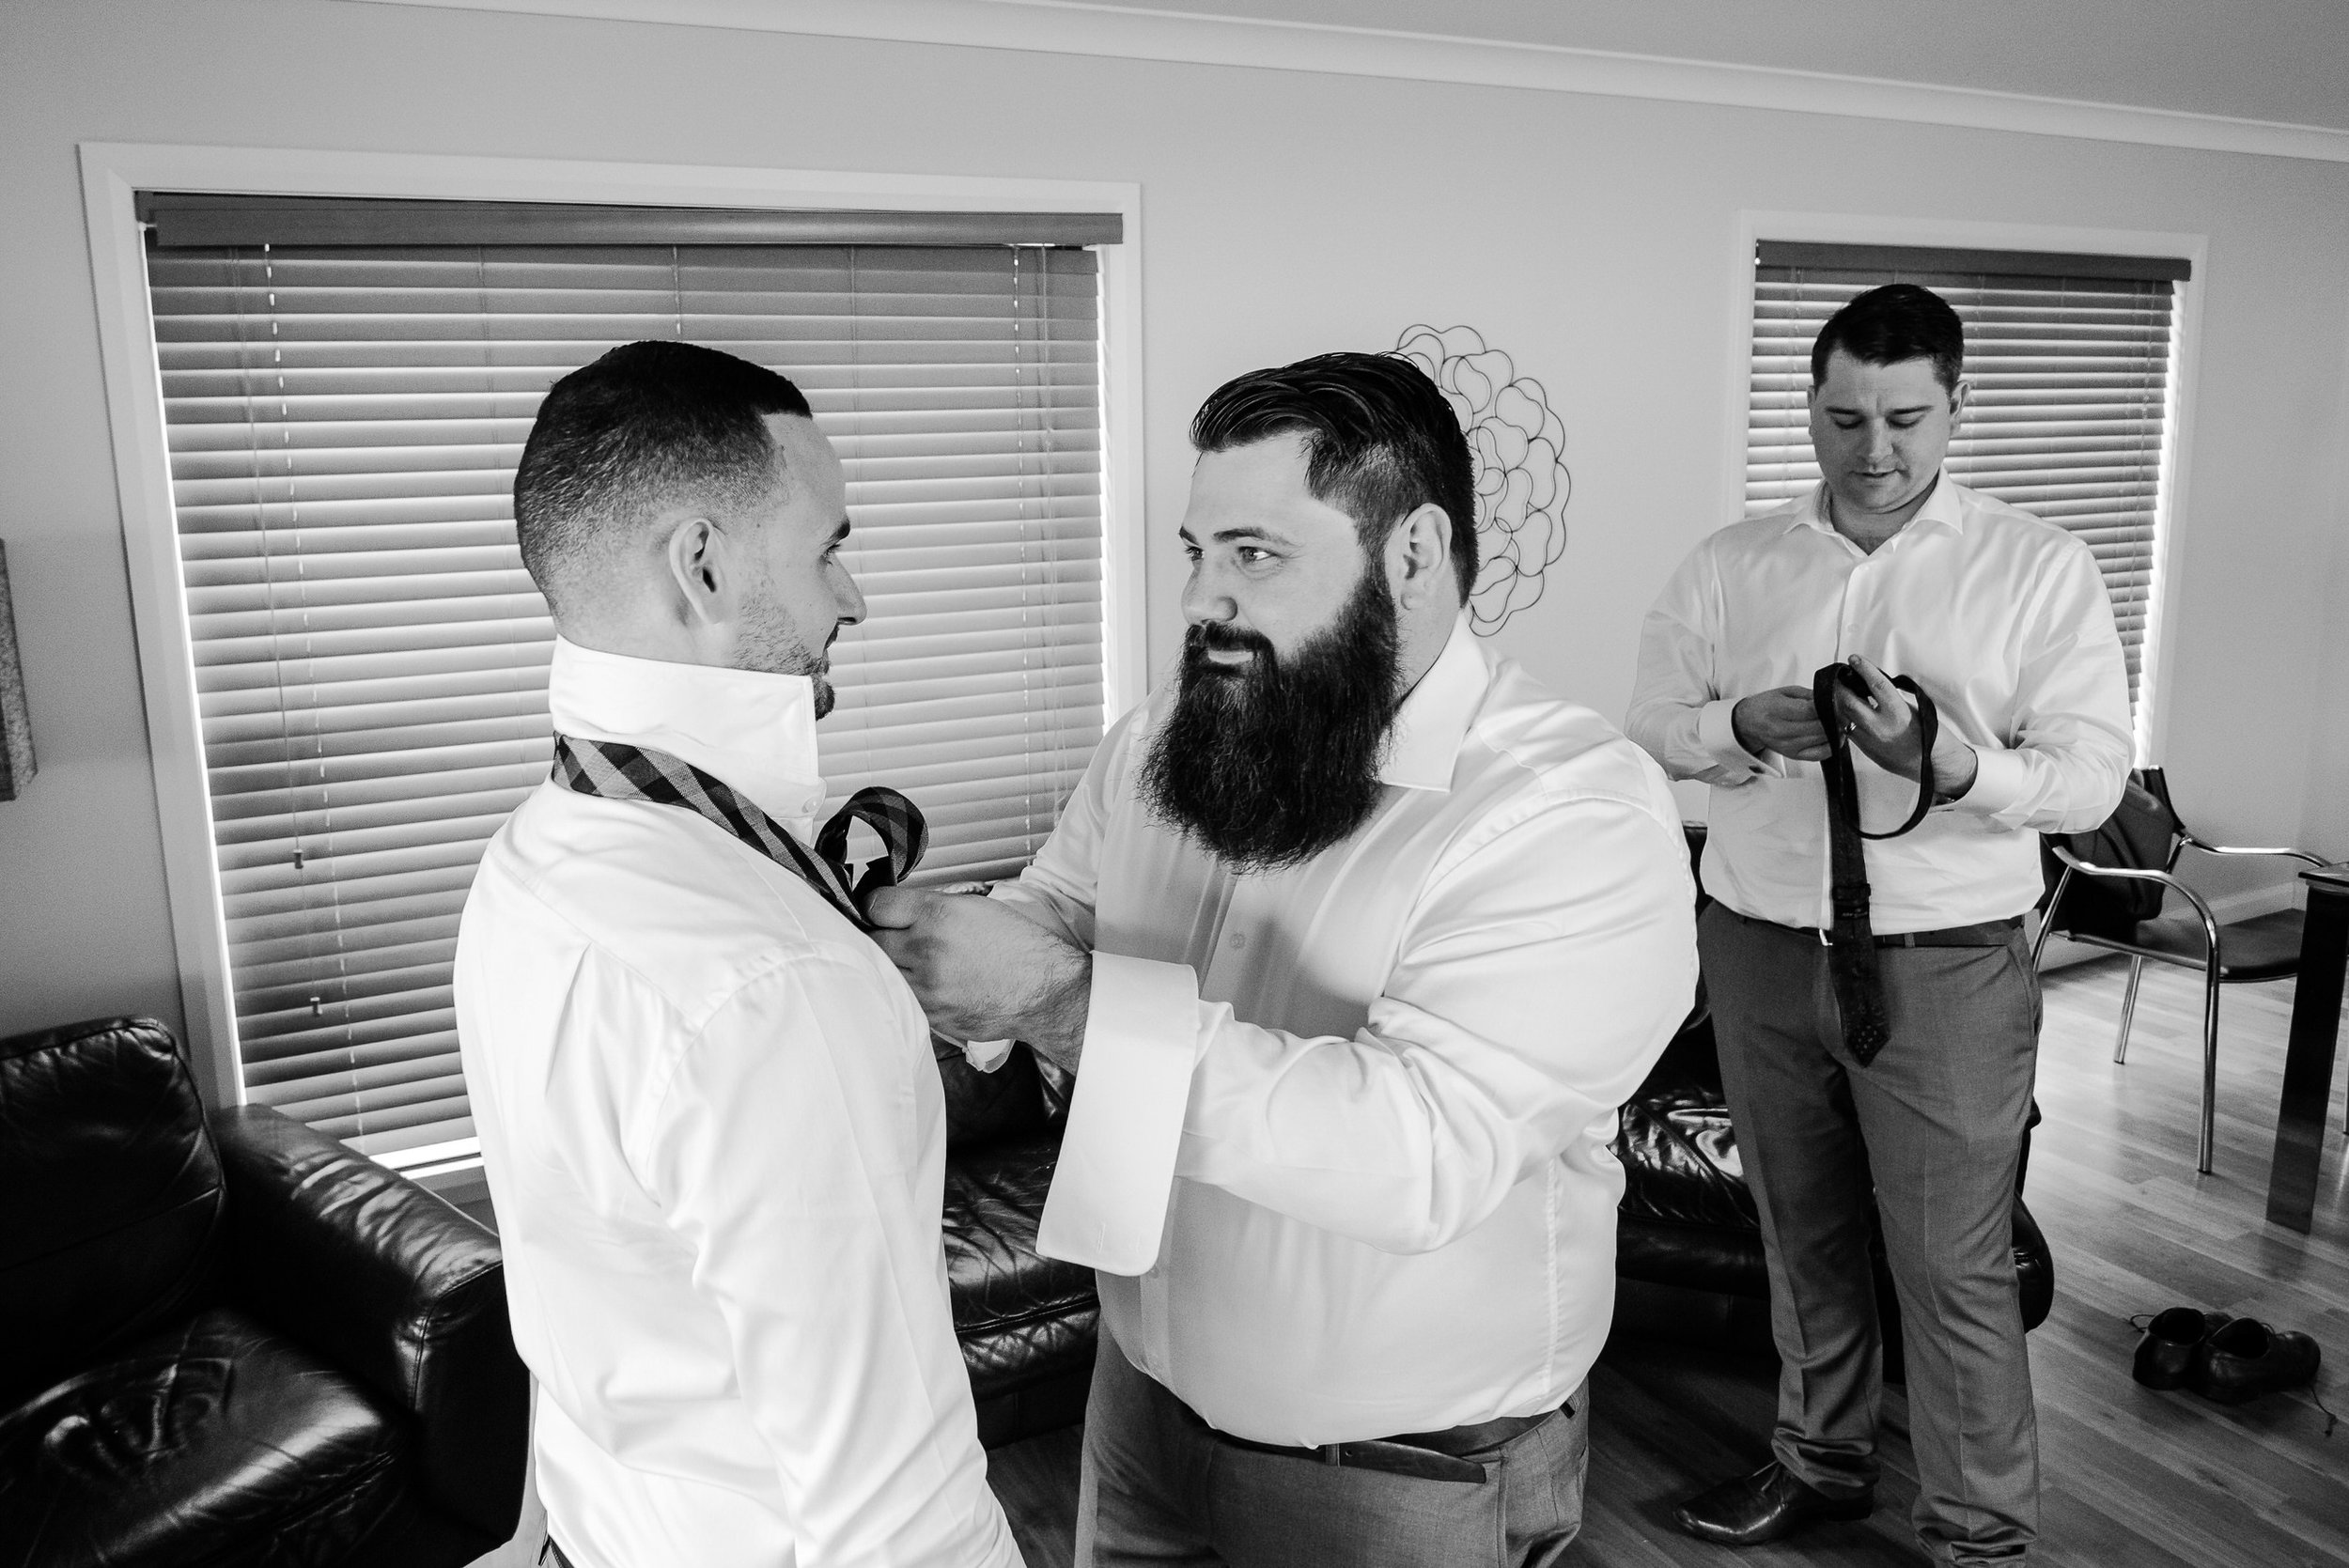 Chateau_Dore_Wedding_Photography_Justin_and_Jim-36.JPG